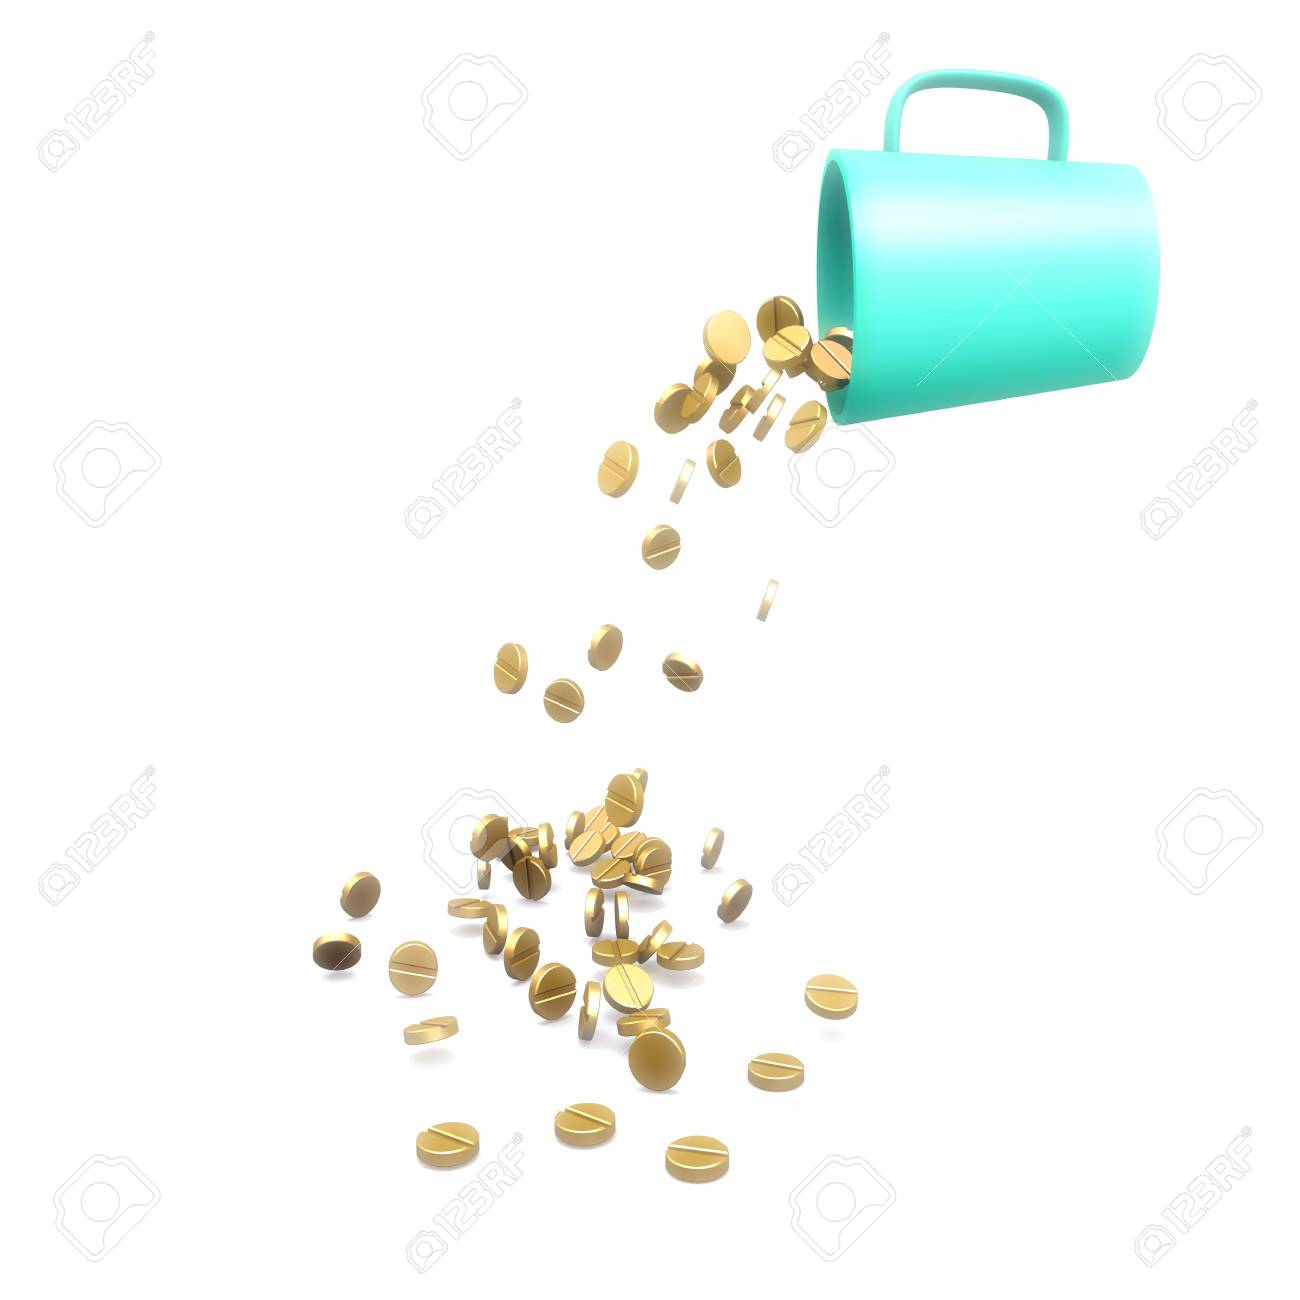 Gold tablets fall from a green mug Stock Photo - 11824522